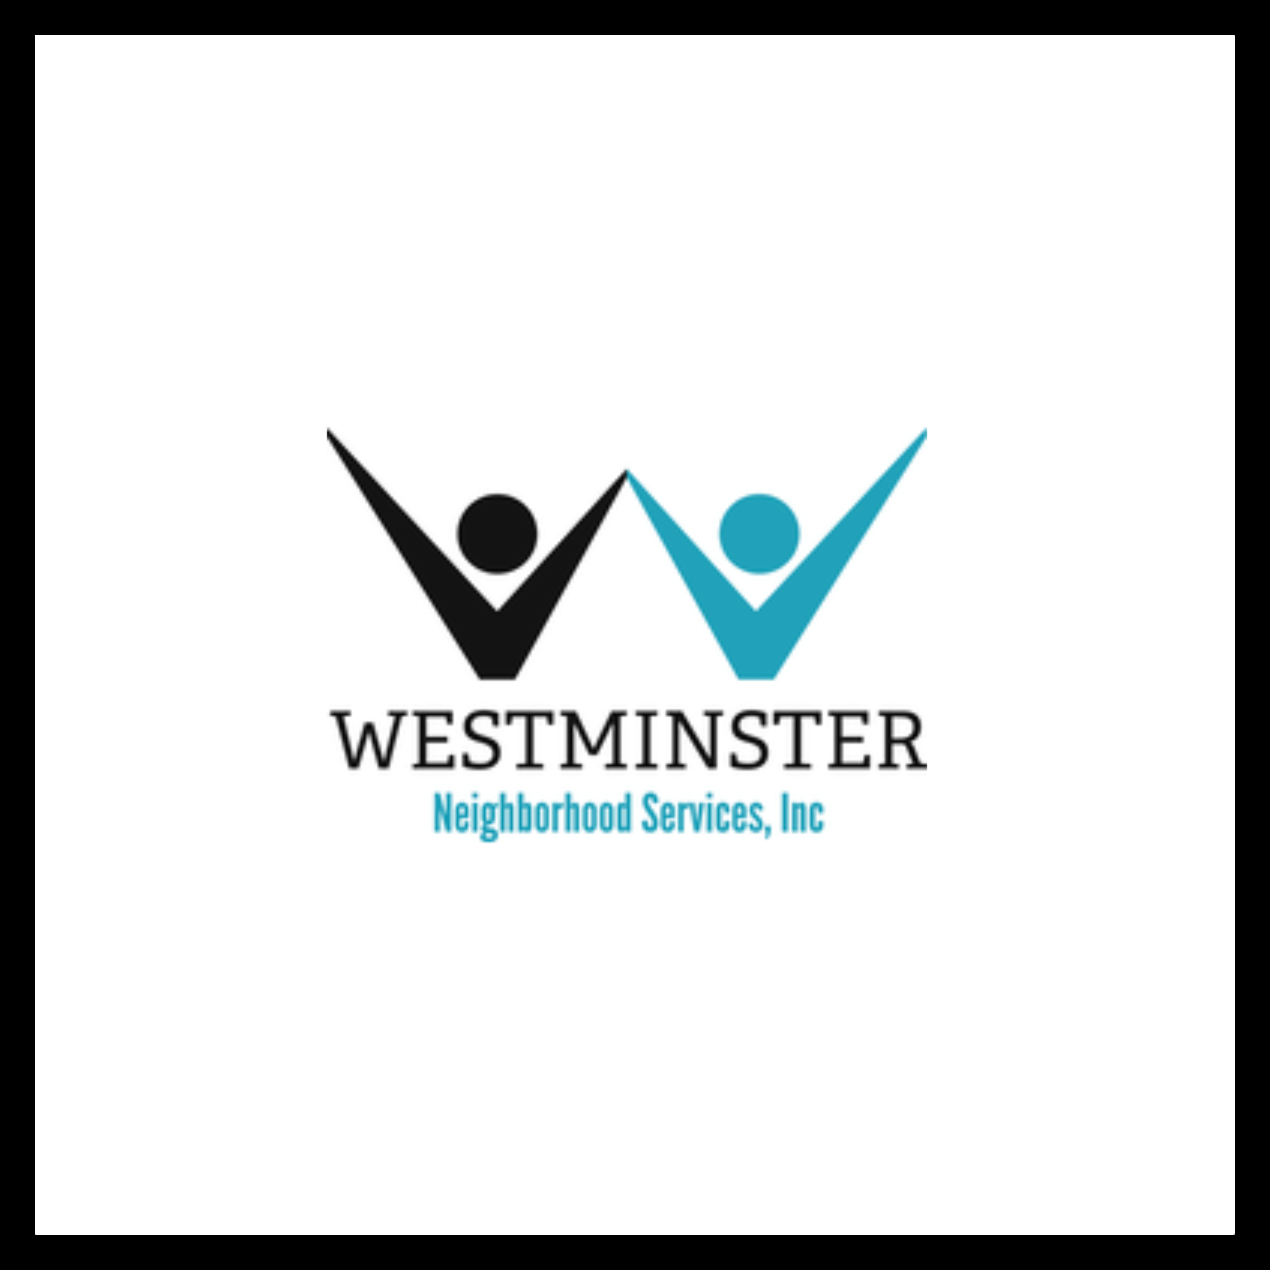 Westminster_square_2_square_border_black.jpg